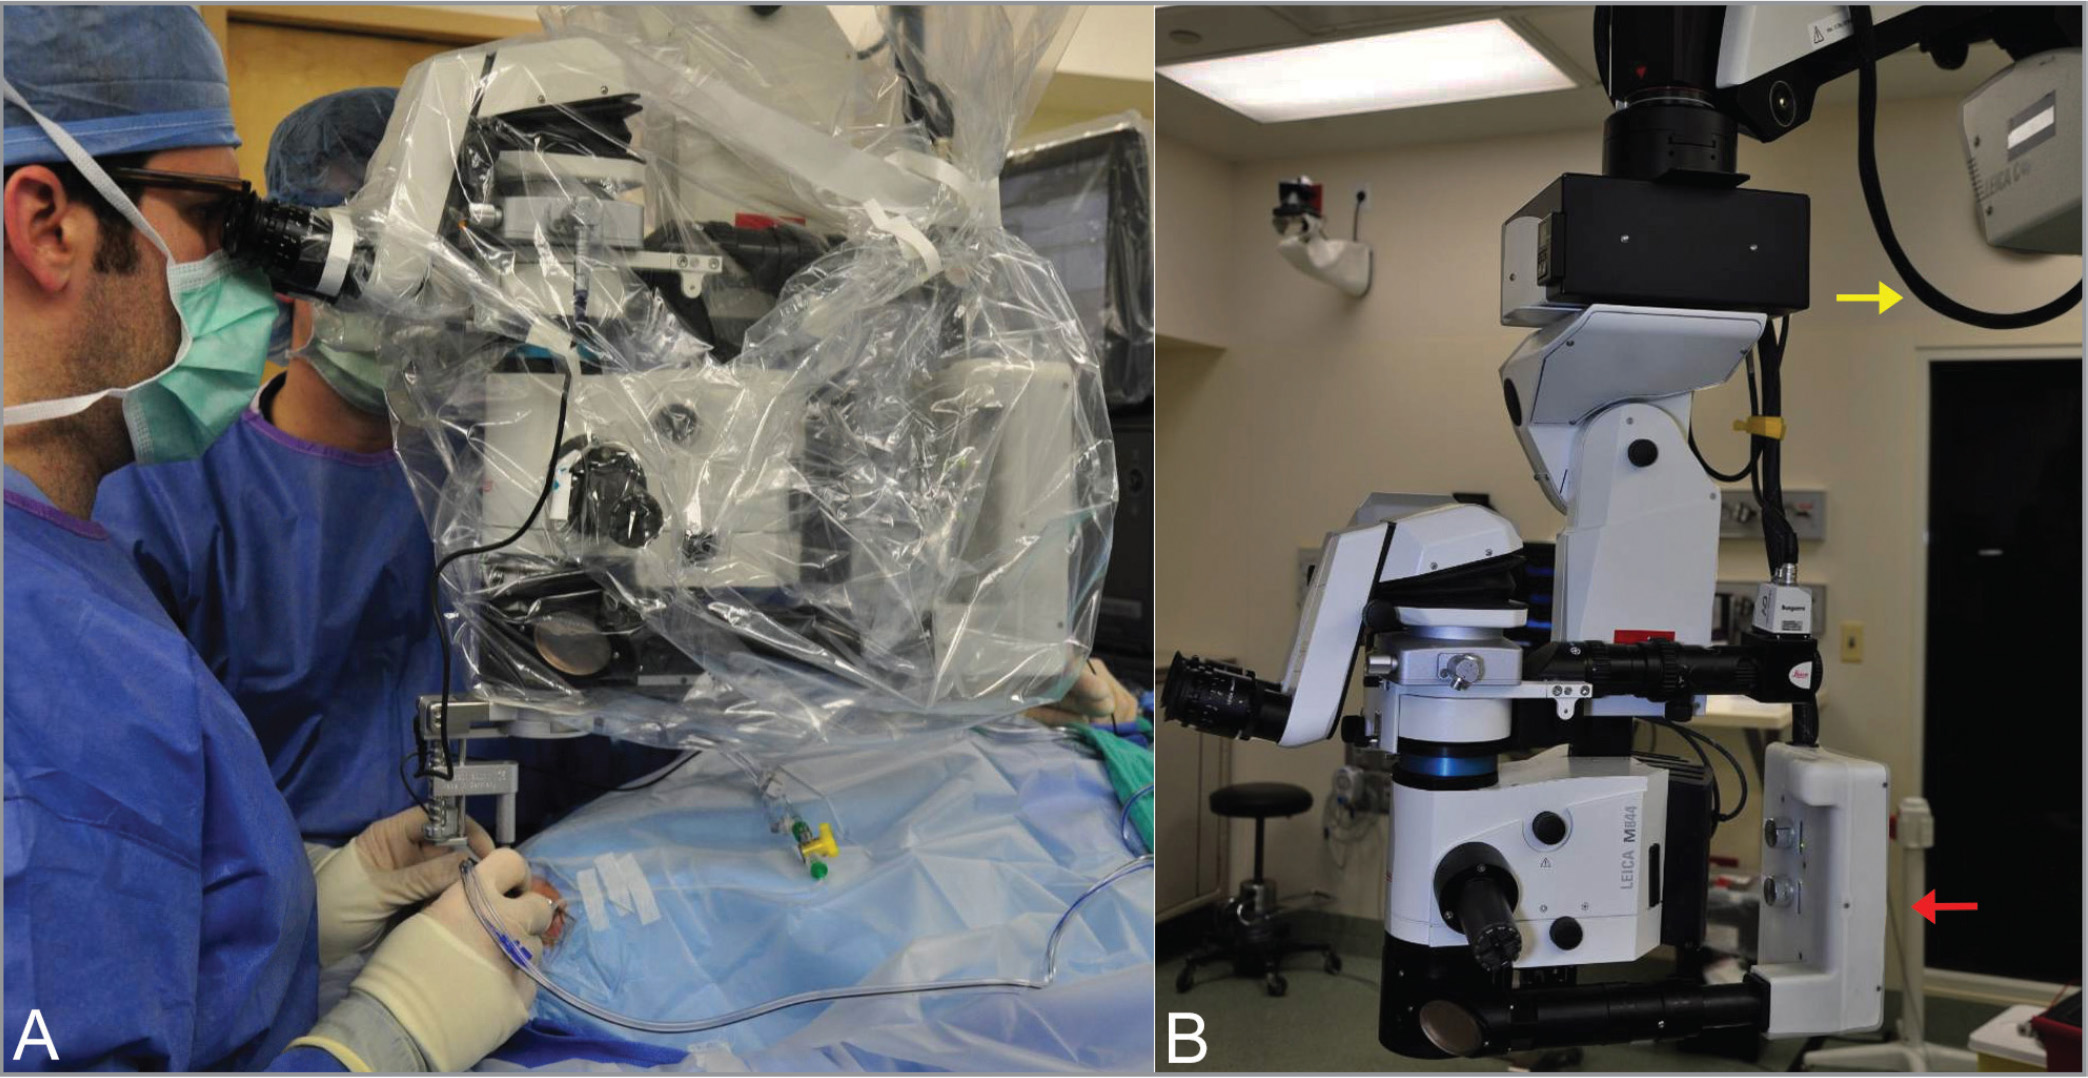 Photograph of the operating microscope and Bioptigen EnFocus intraoperative optical coherence tomography system. (A) Draped system. (B) Undraped system, showing EnFocus system (red arrow) and connecting cable (yellow arrow).